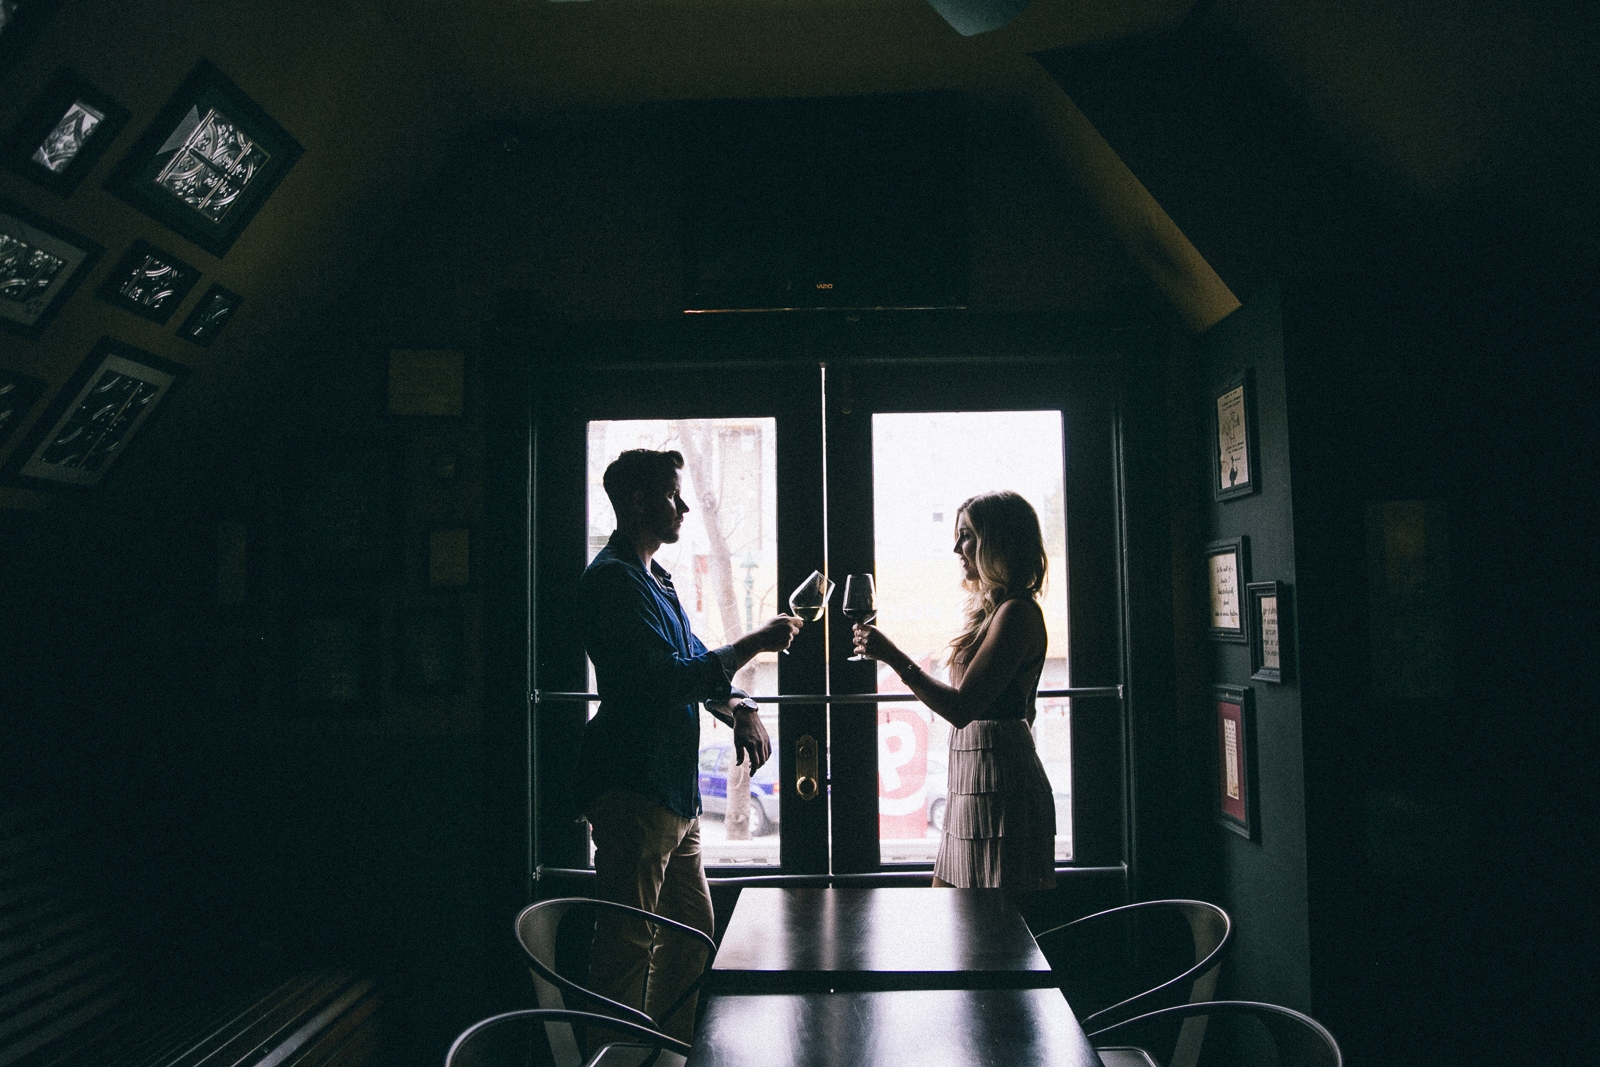 HALEY_&_MICHAEL_ENGAGEMENT_EMBARCADERO_March 03, 2016_IMG_9604.JPG